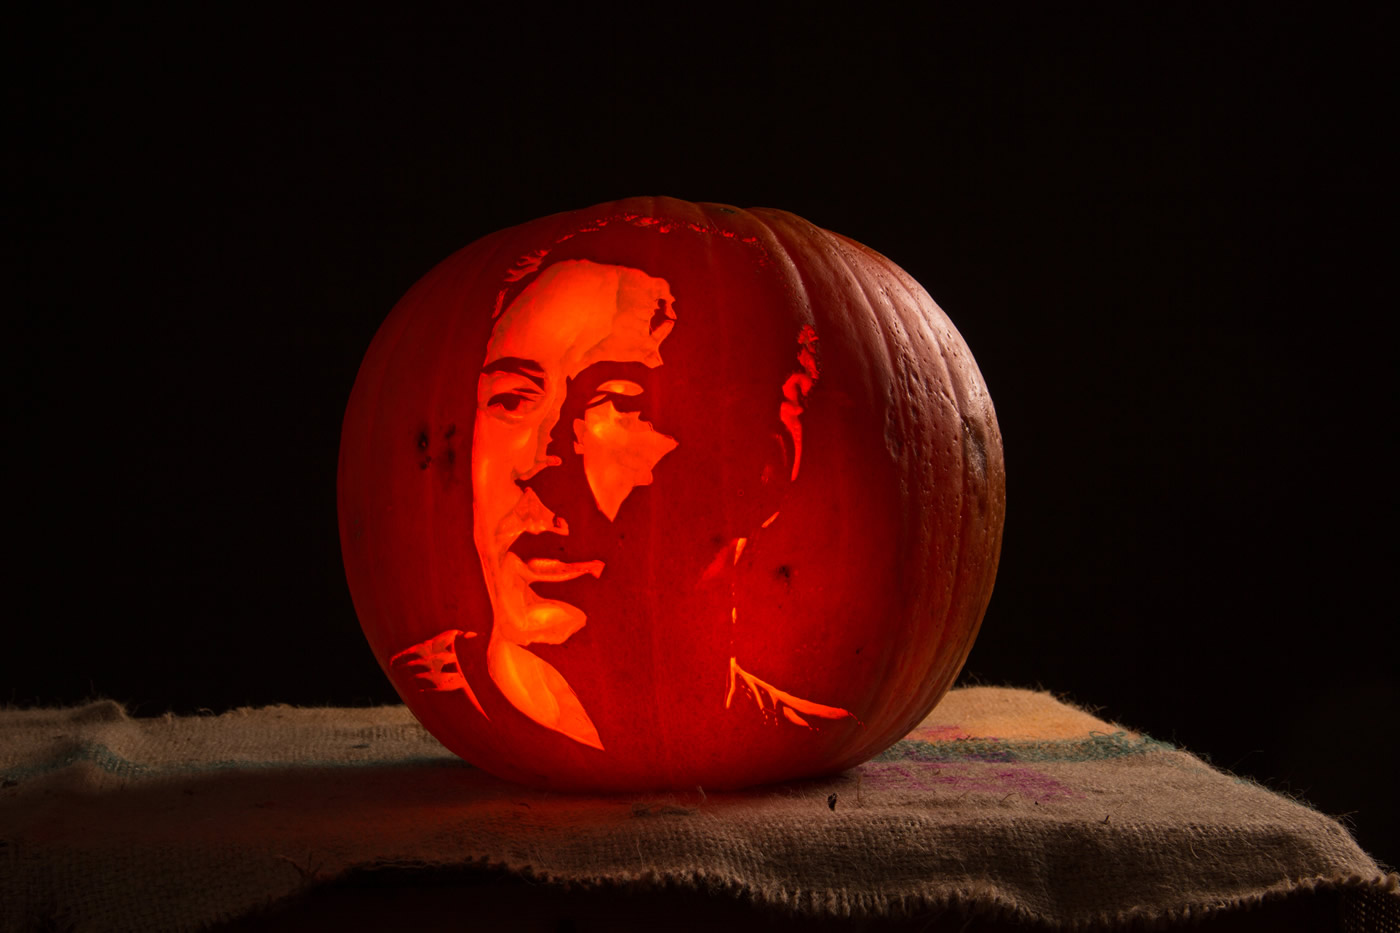 Chelsea player John Terry, portrait carved into a pumpkin